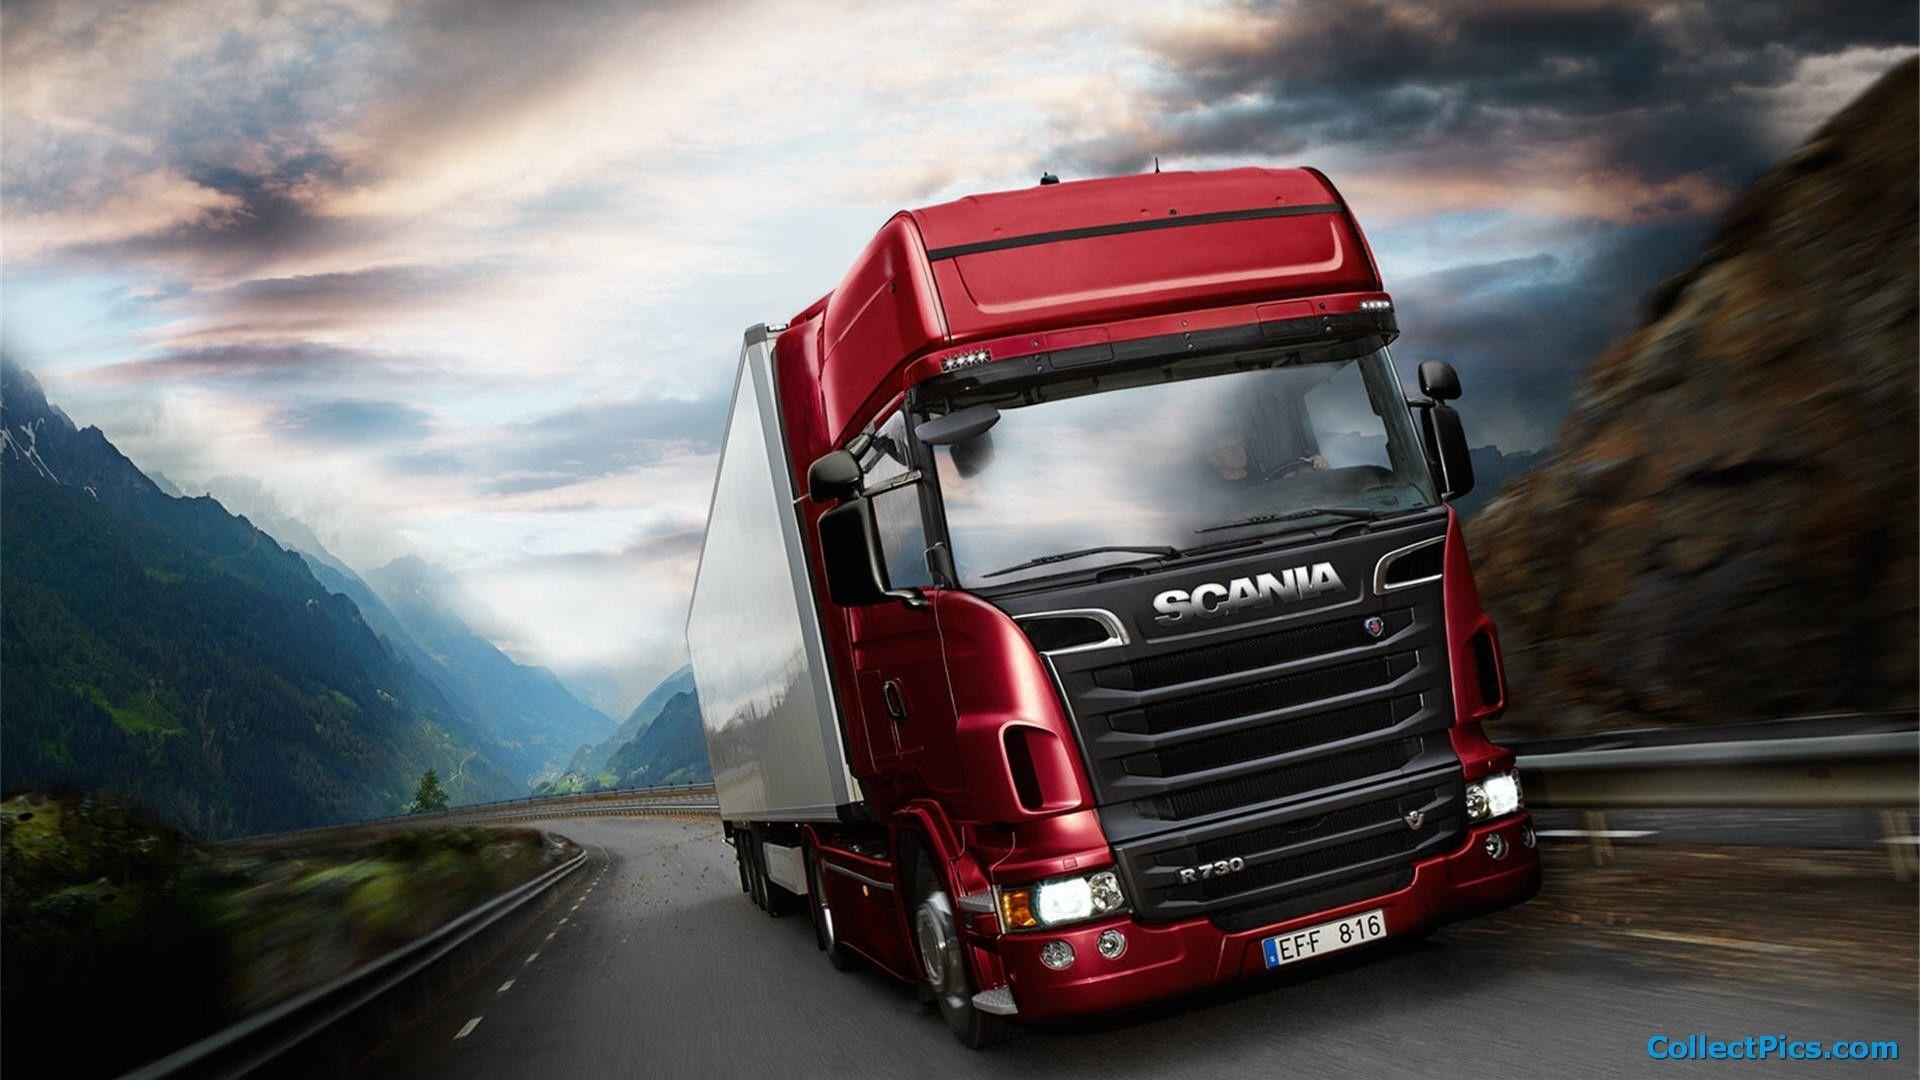 Daf Truck Wallpapers Top Free Daf Truck Backgrounds Wallpaperaccess